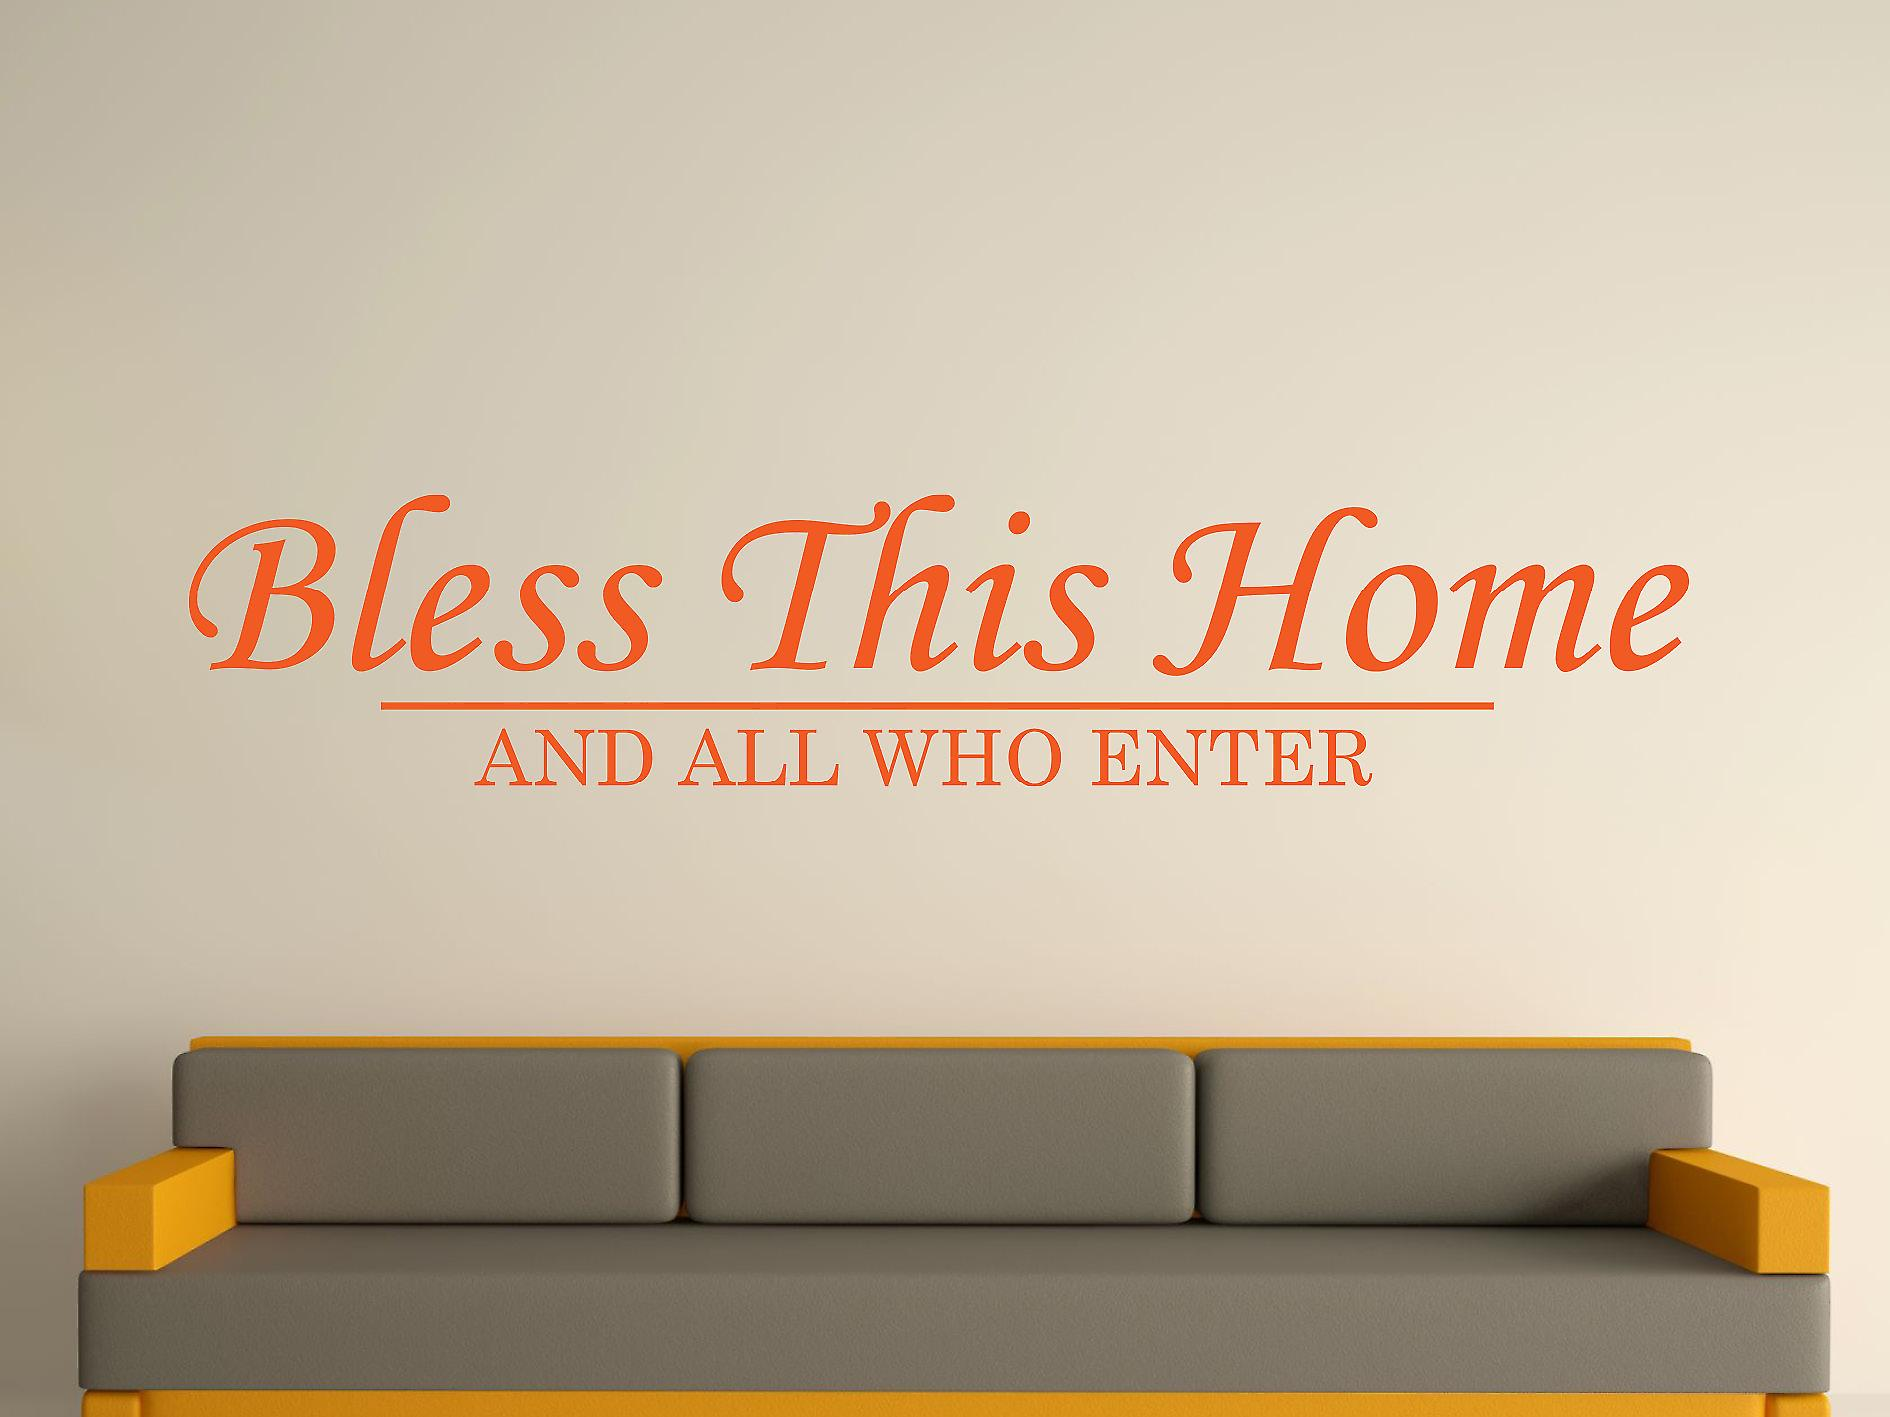 Bless This Home Wall Art Sticker - Orange